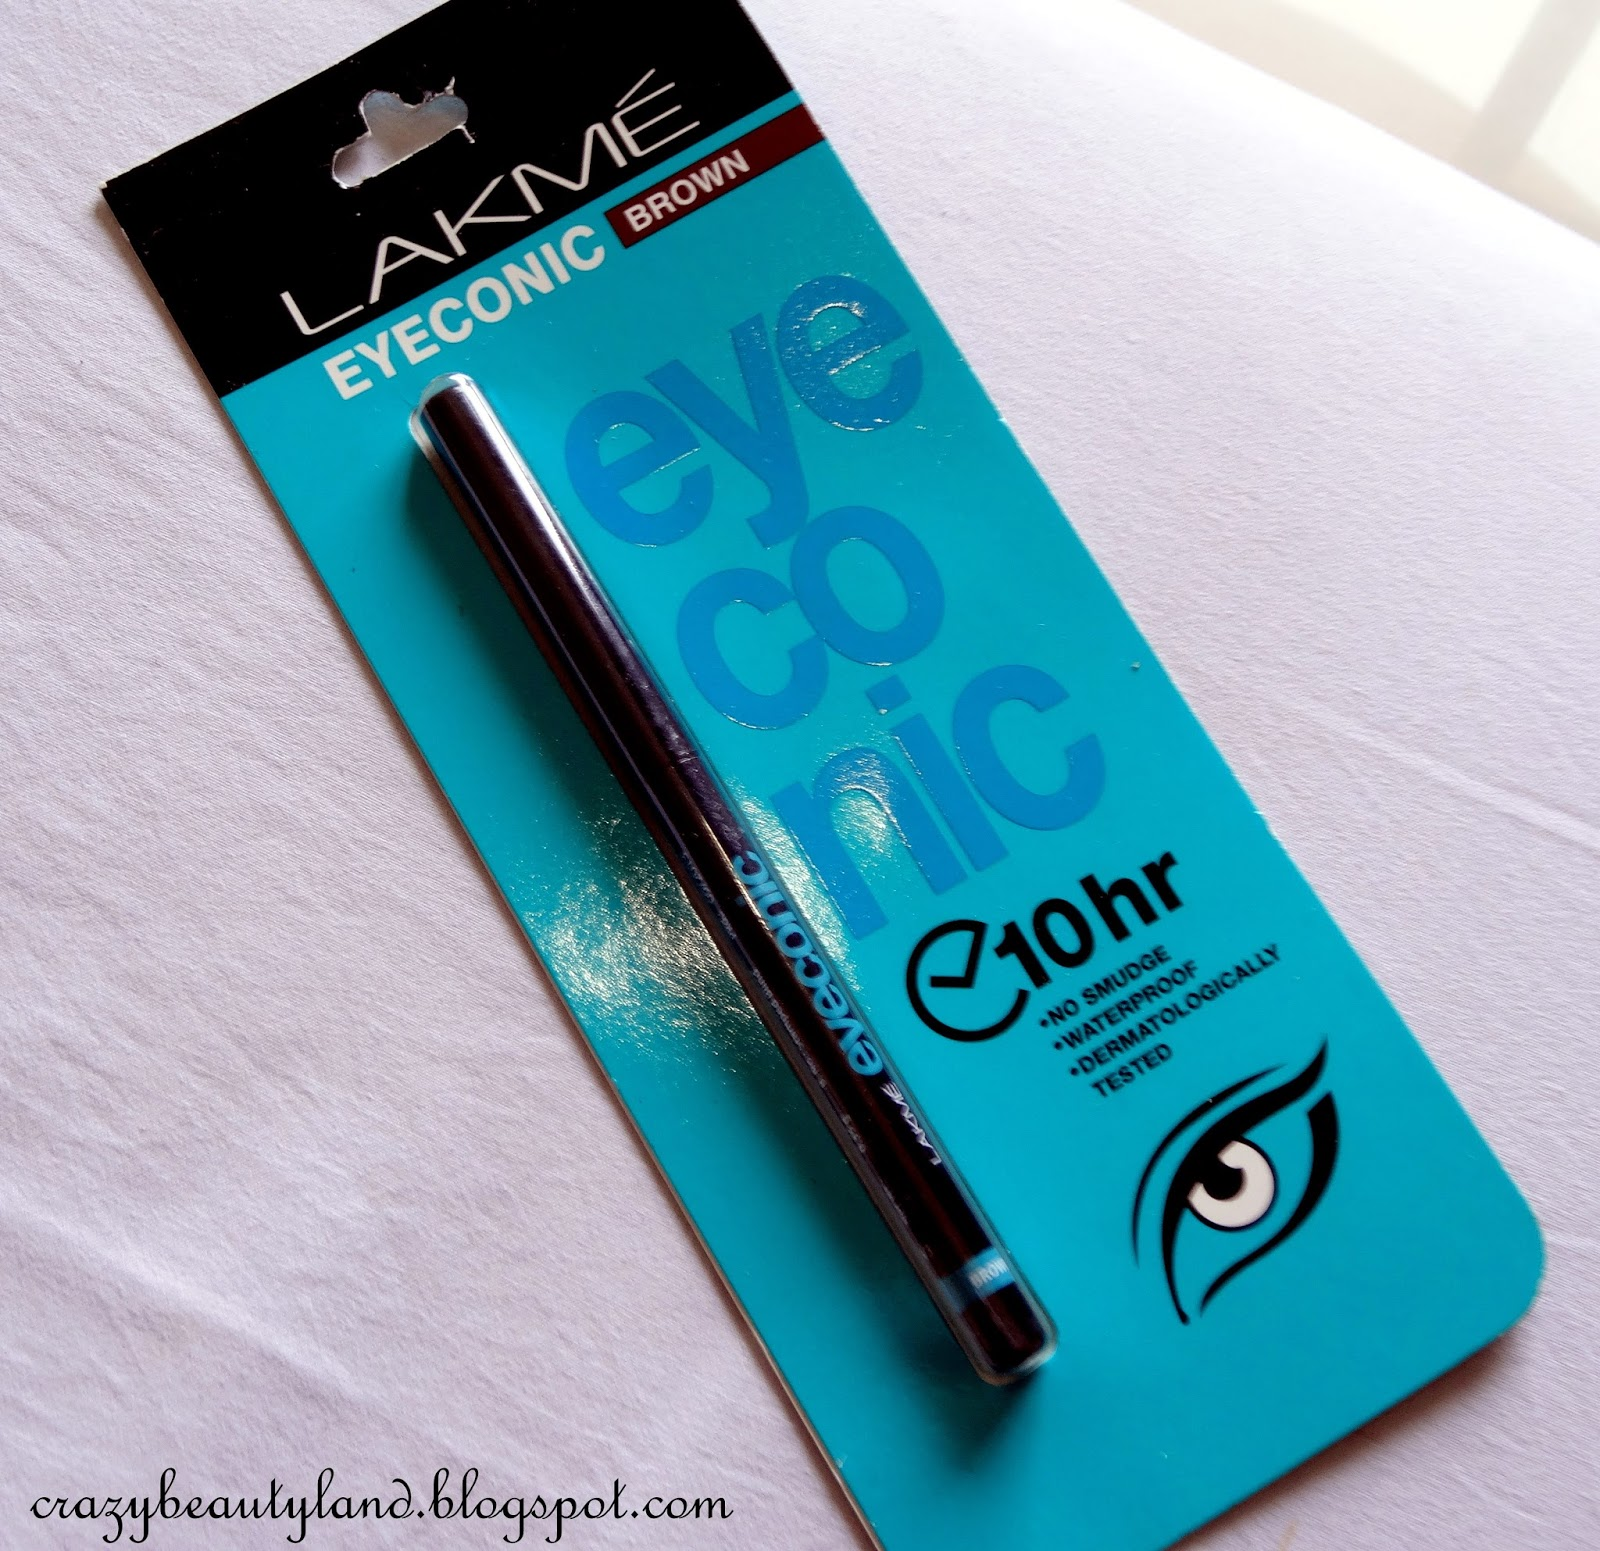 Lakme Eyeconic 10 Hr Kajal in Brown- Review,Price, Swatches, Photos, EOTD, where to buy online in India